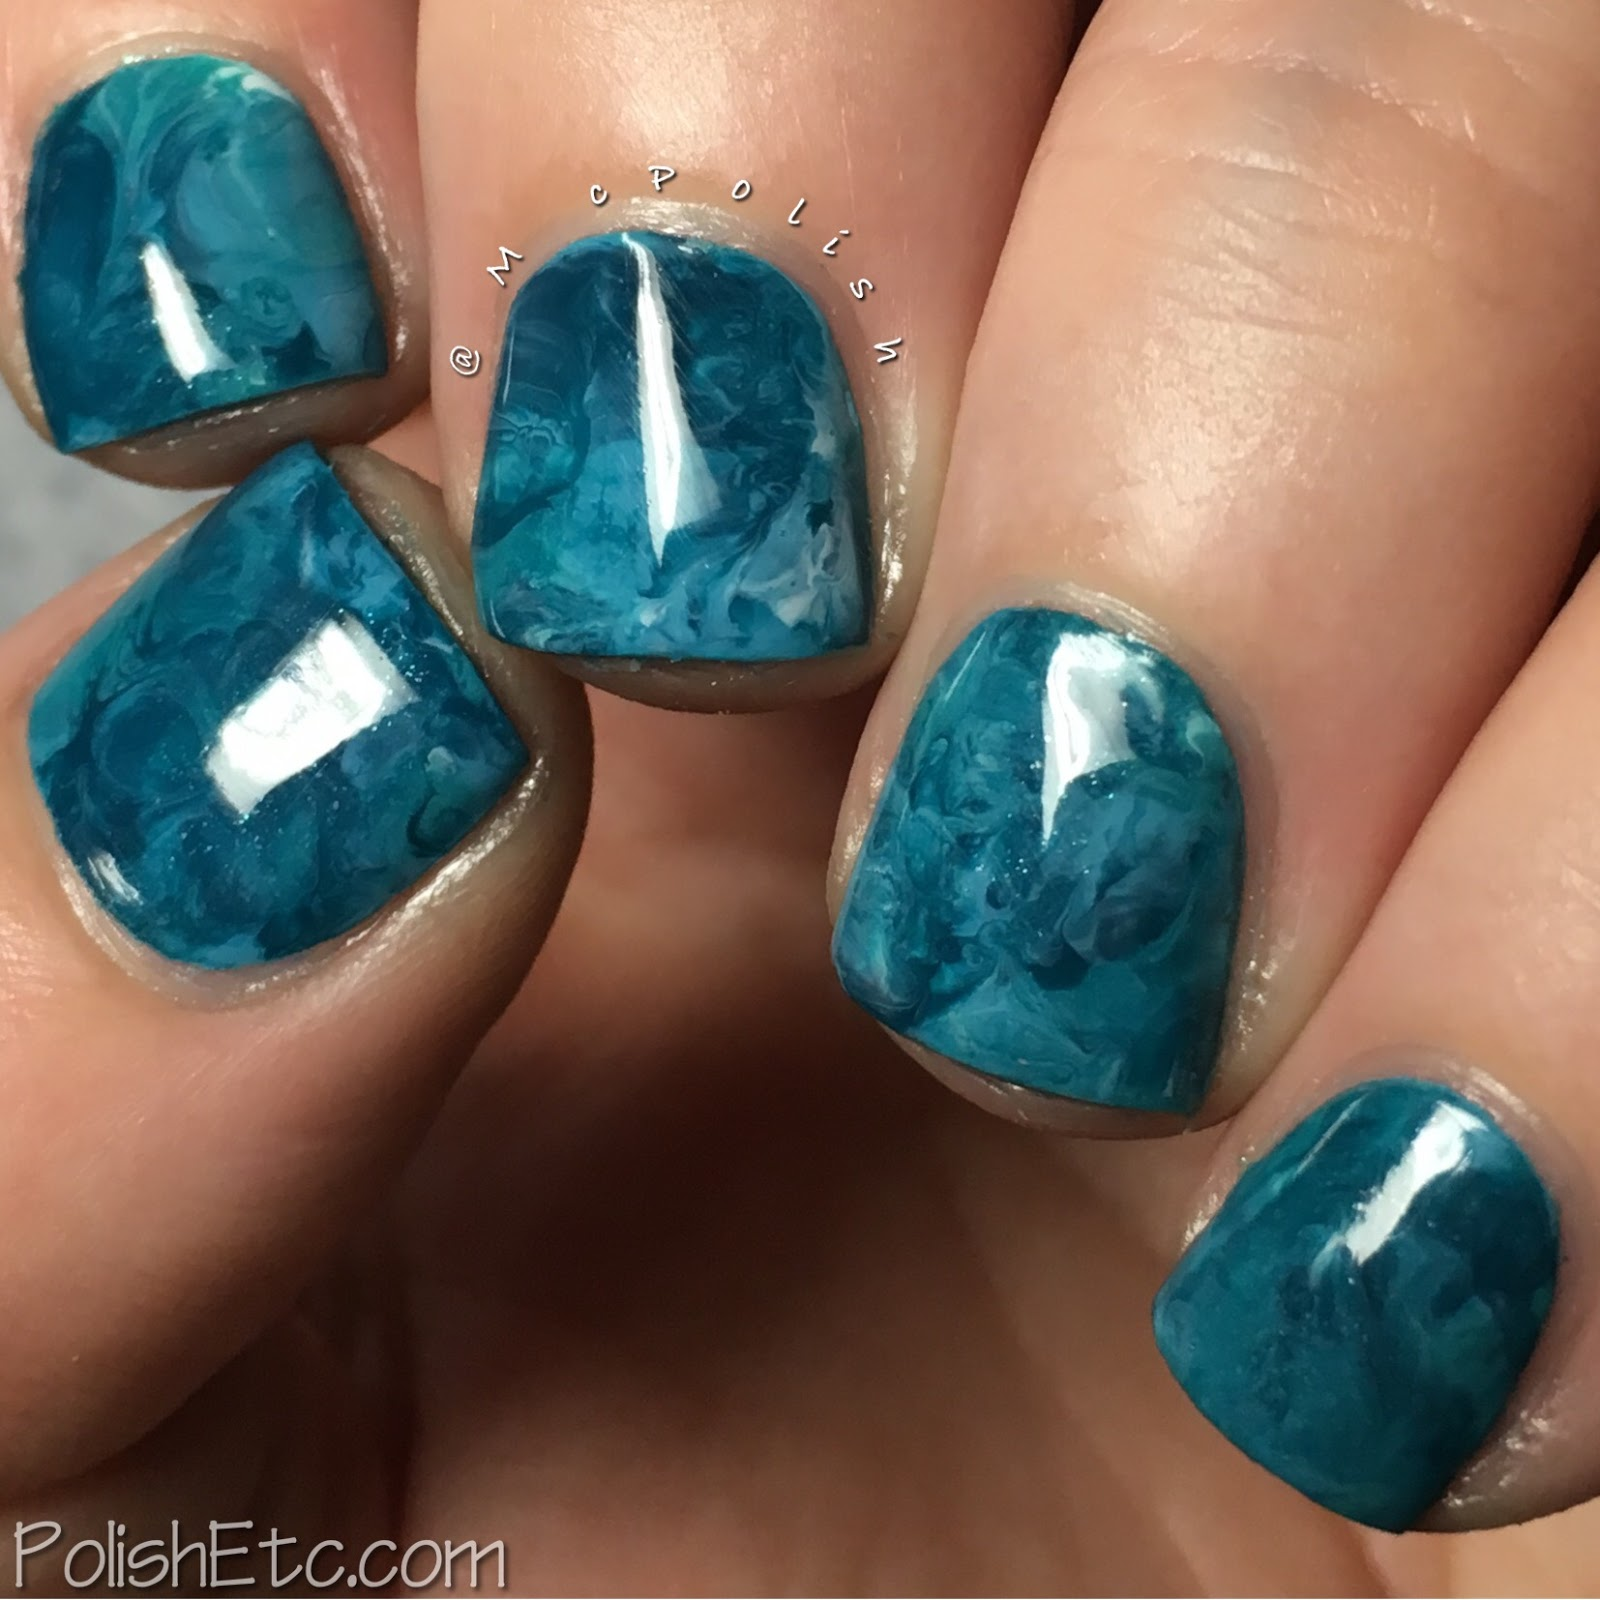 Inspired by Teal for the #31DC2017Weekly - McPolish - squishy marble mani